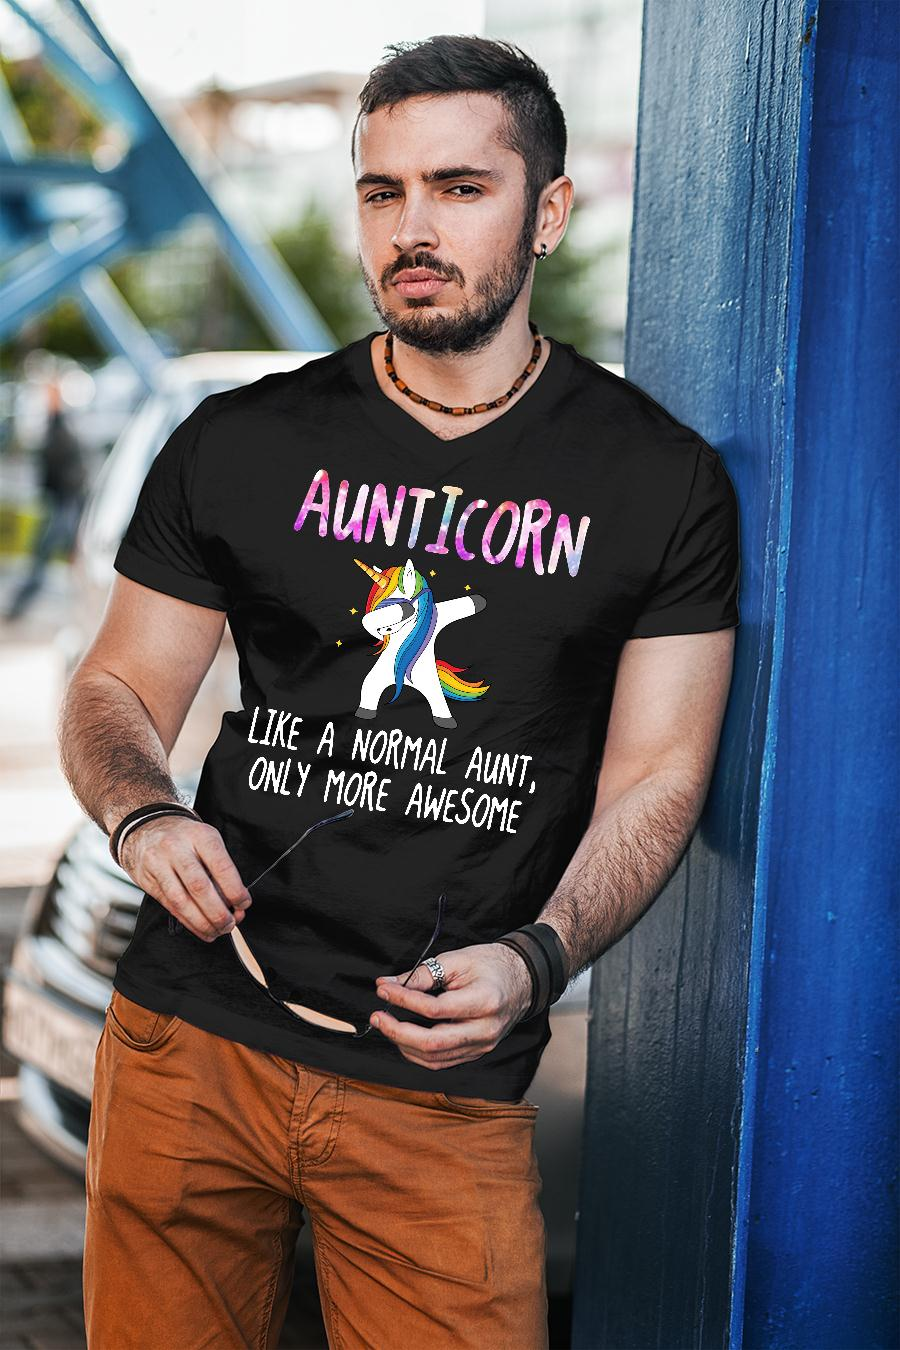 Auticorn dabbing like a normal aunt only more awesome shirt unisex